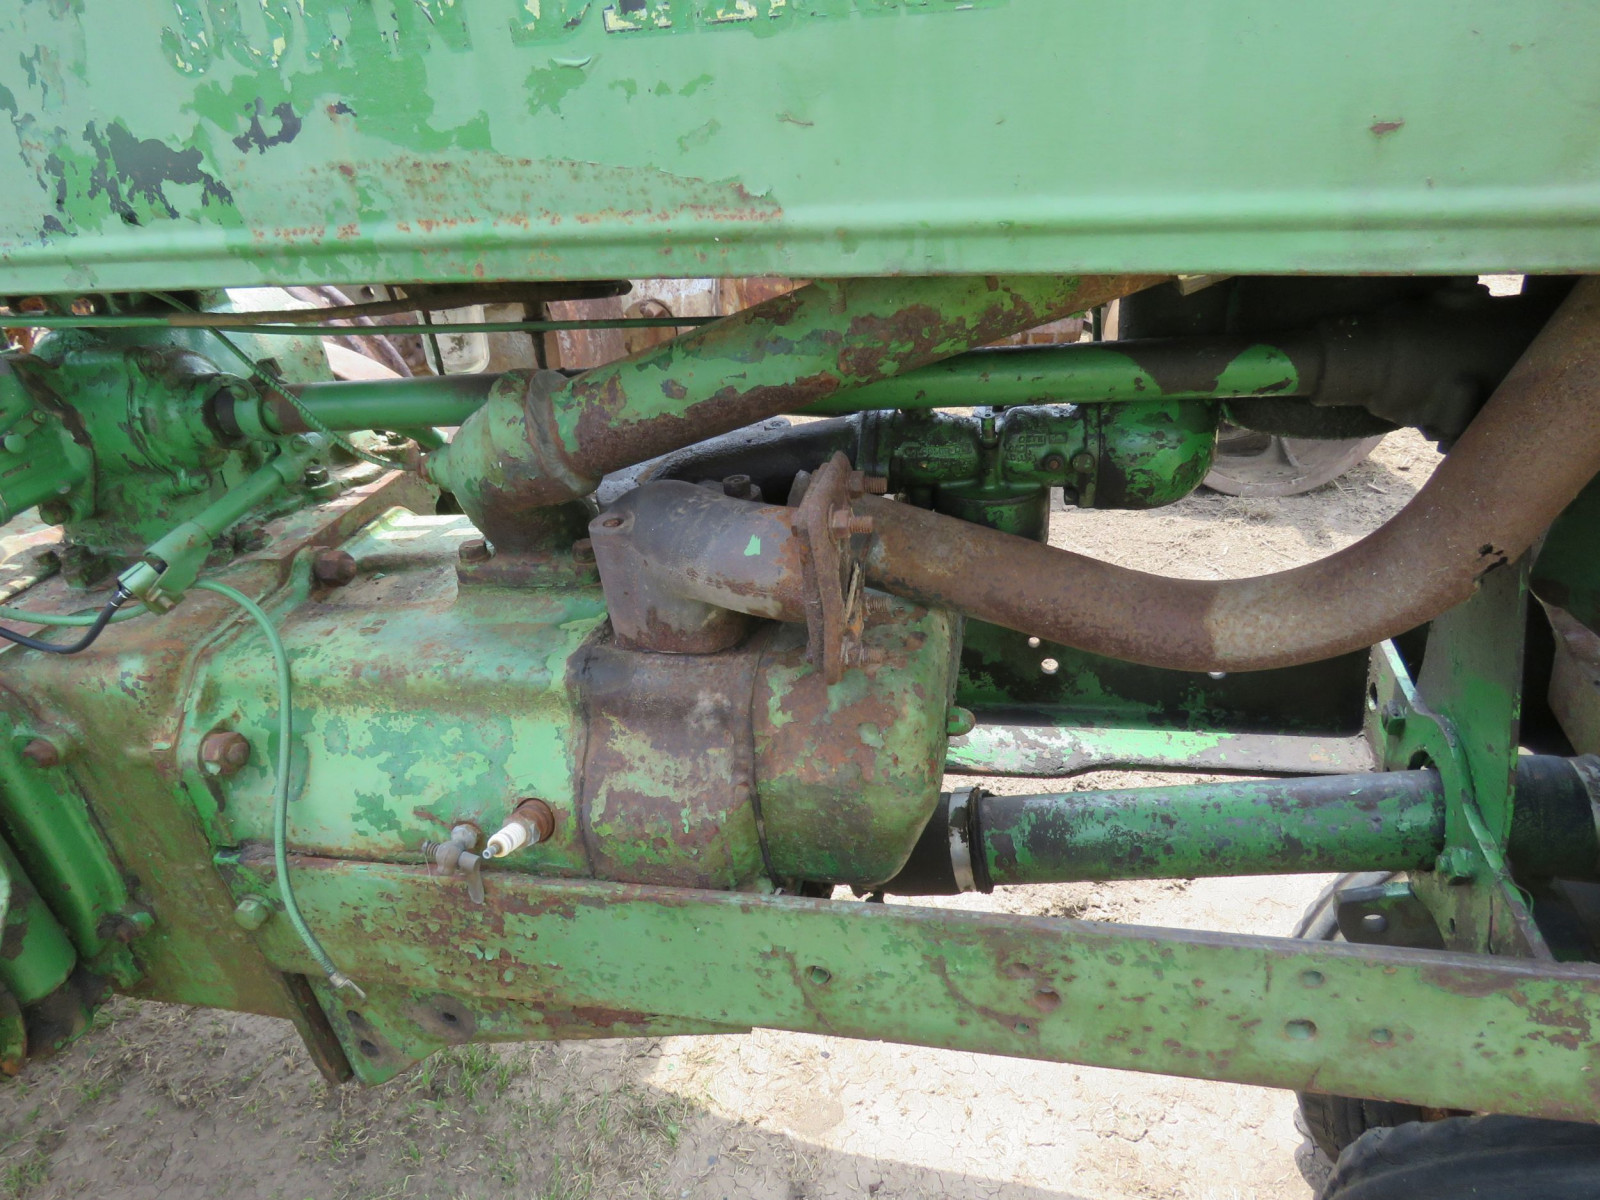 1936 John Deere Unstyled A Tractor - Image 3